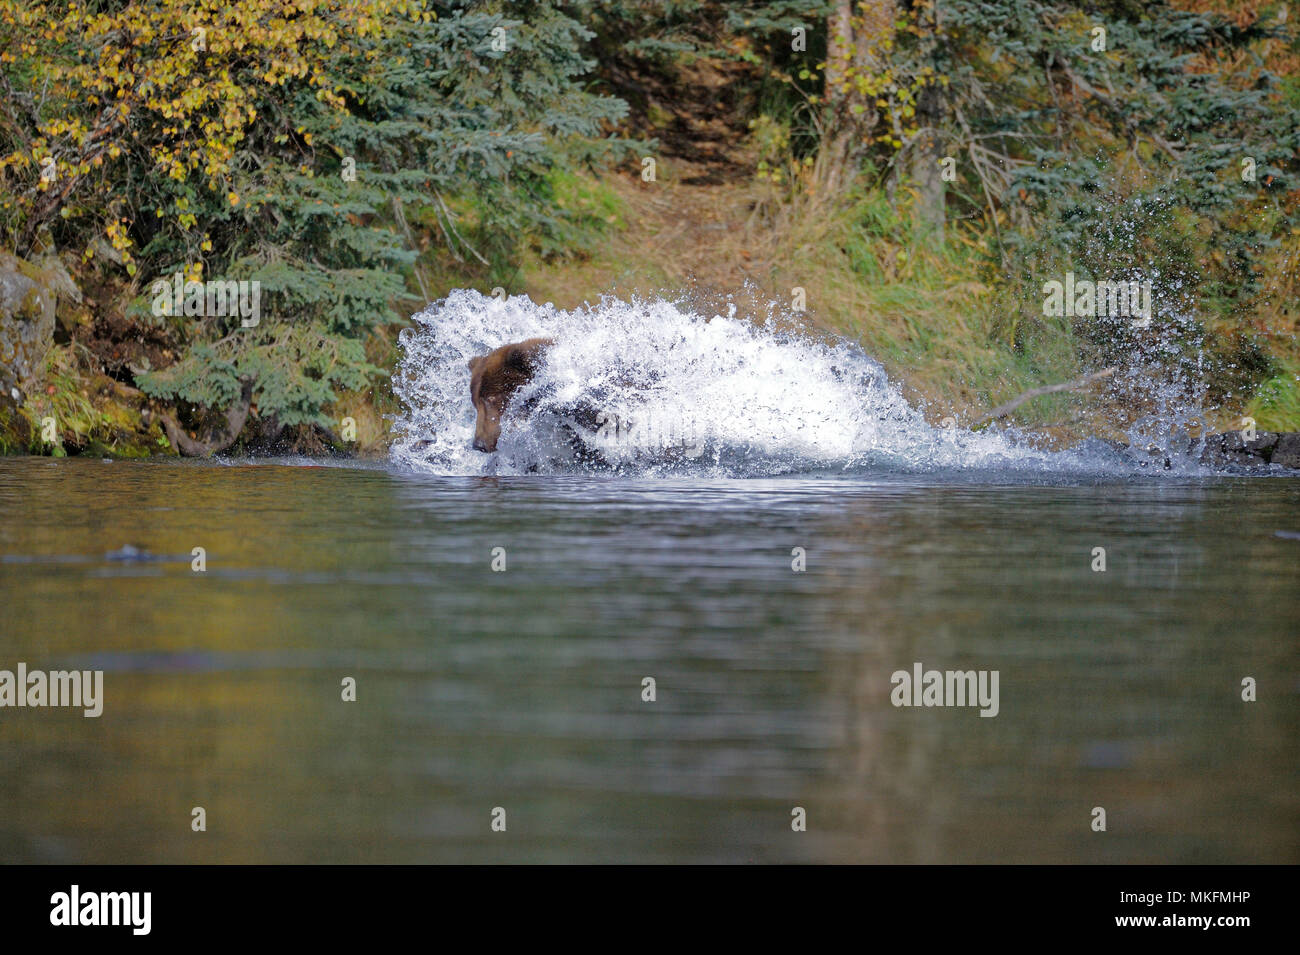 Grizzly (Ursus arctos horribilis) female jumping on salmons, Katmai National park, Alaska, USA Stock Photo